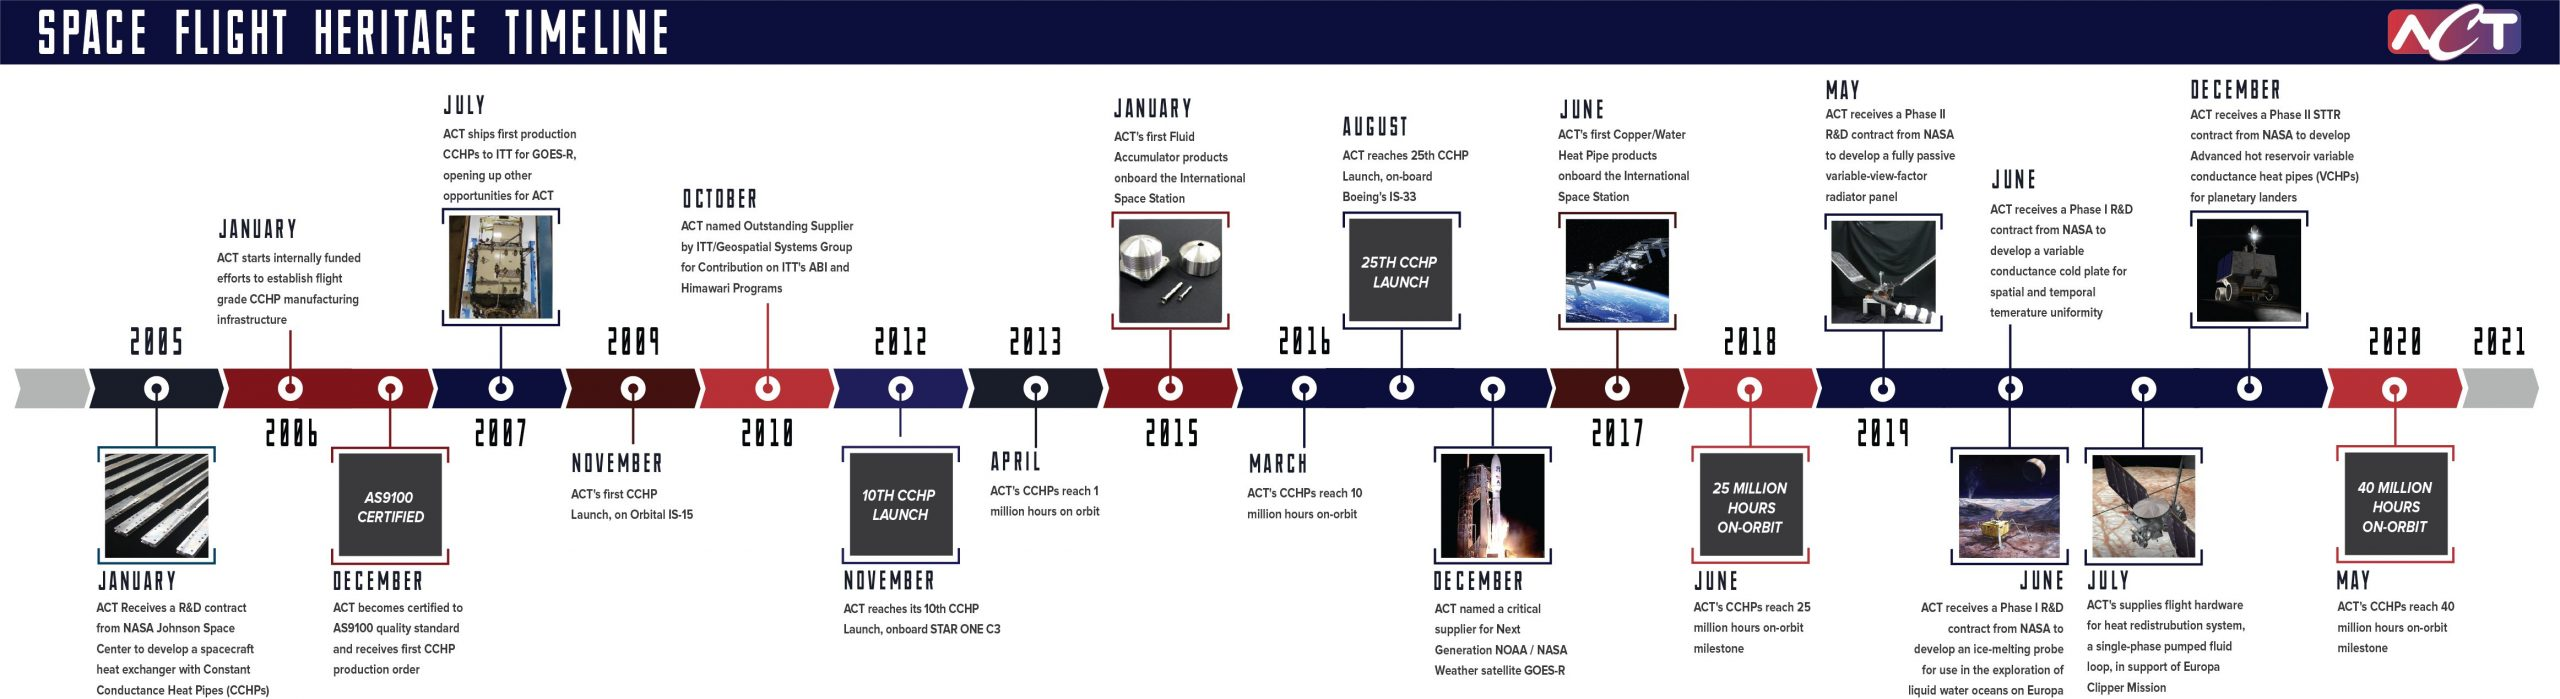 Advanced Cooling Technologies- Space Flight Heritage Timeline